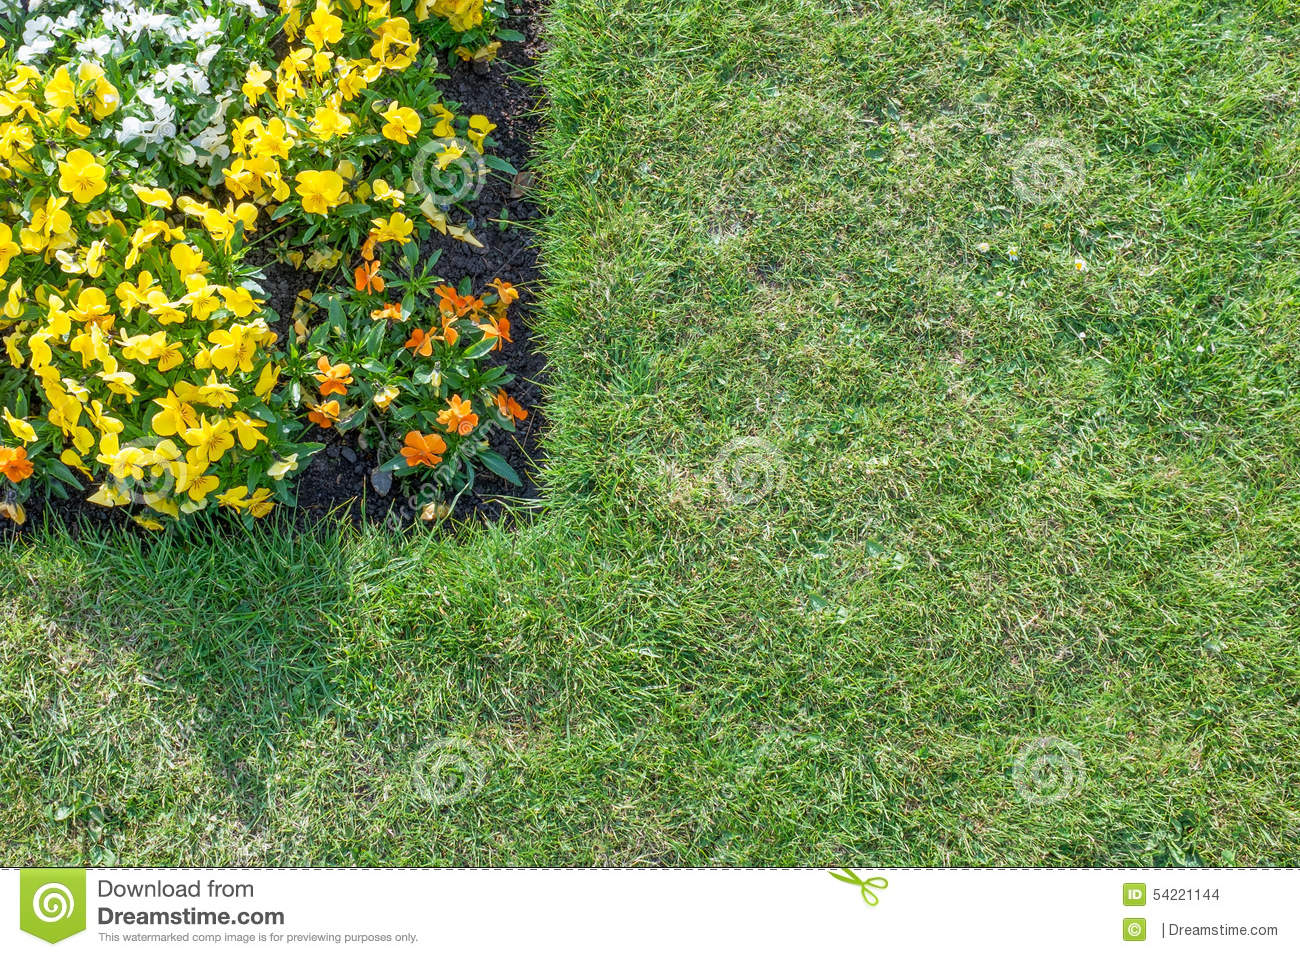 Flower Bed With Orange Yellow White Flowers Surrounded By Gre